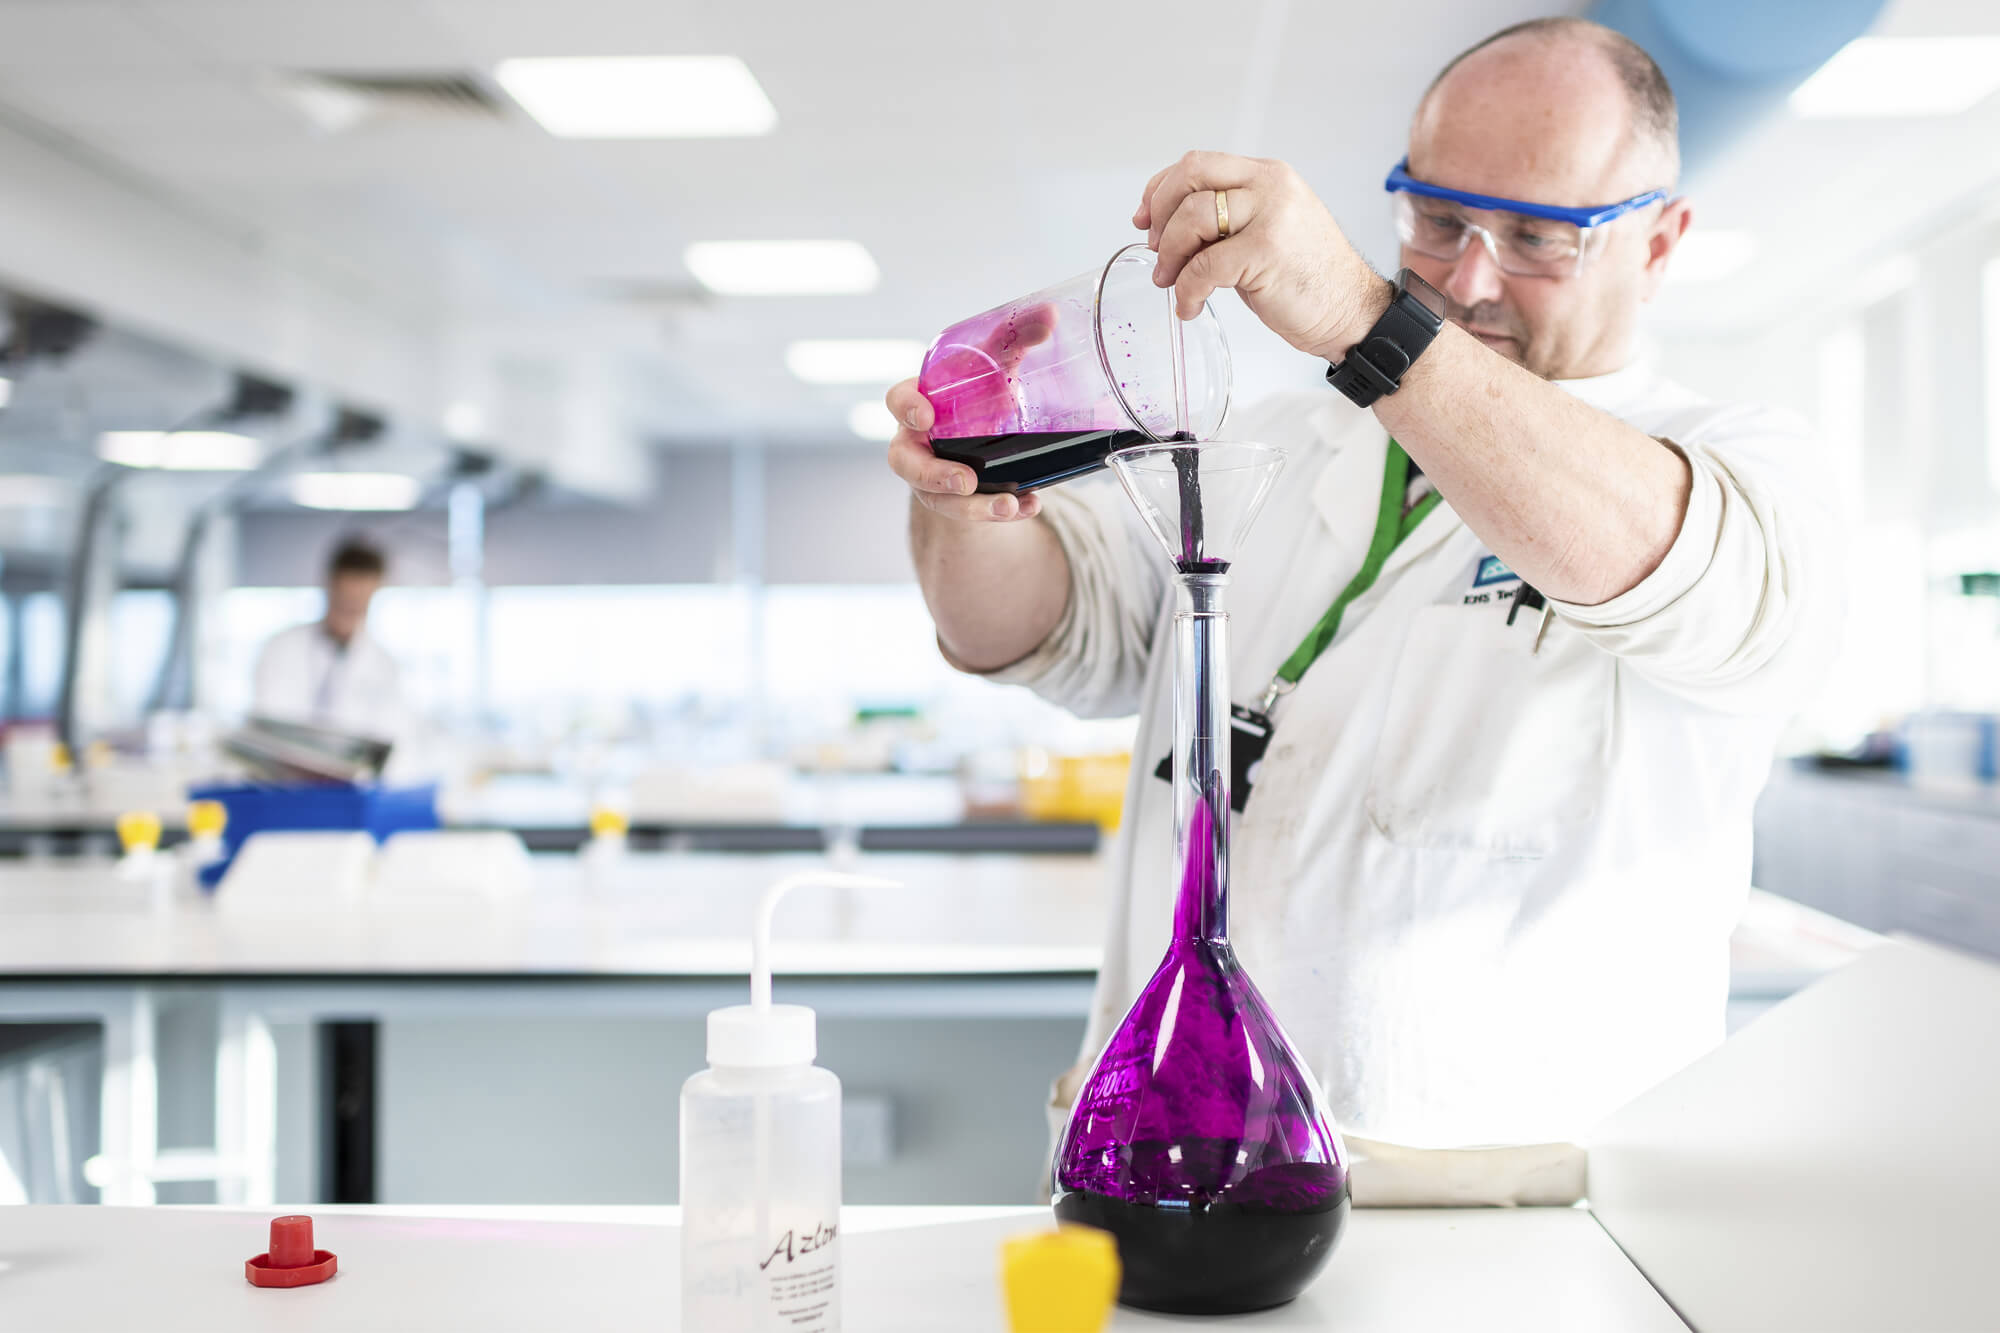 An academic in a lab pouring purple liquid into a glass test tube.